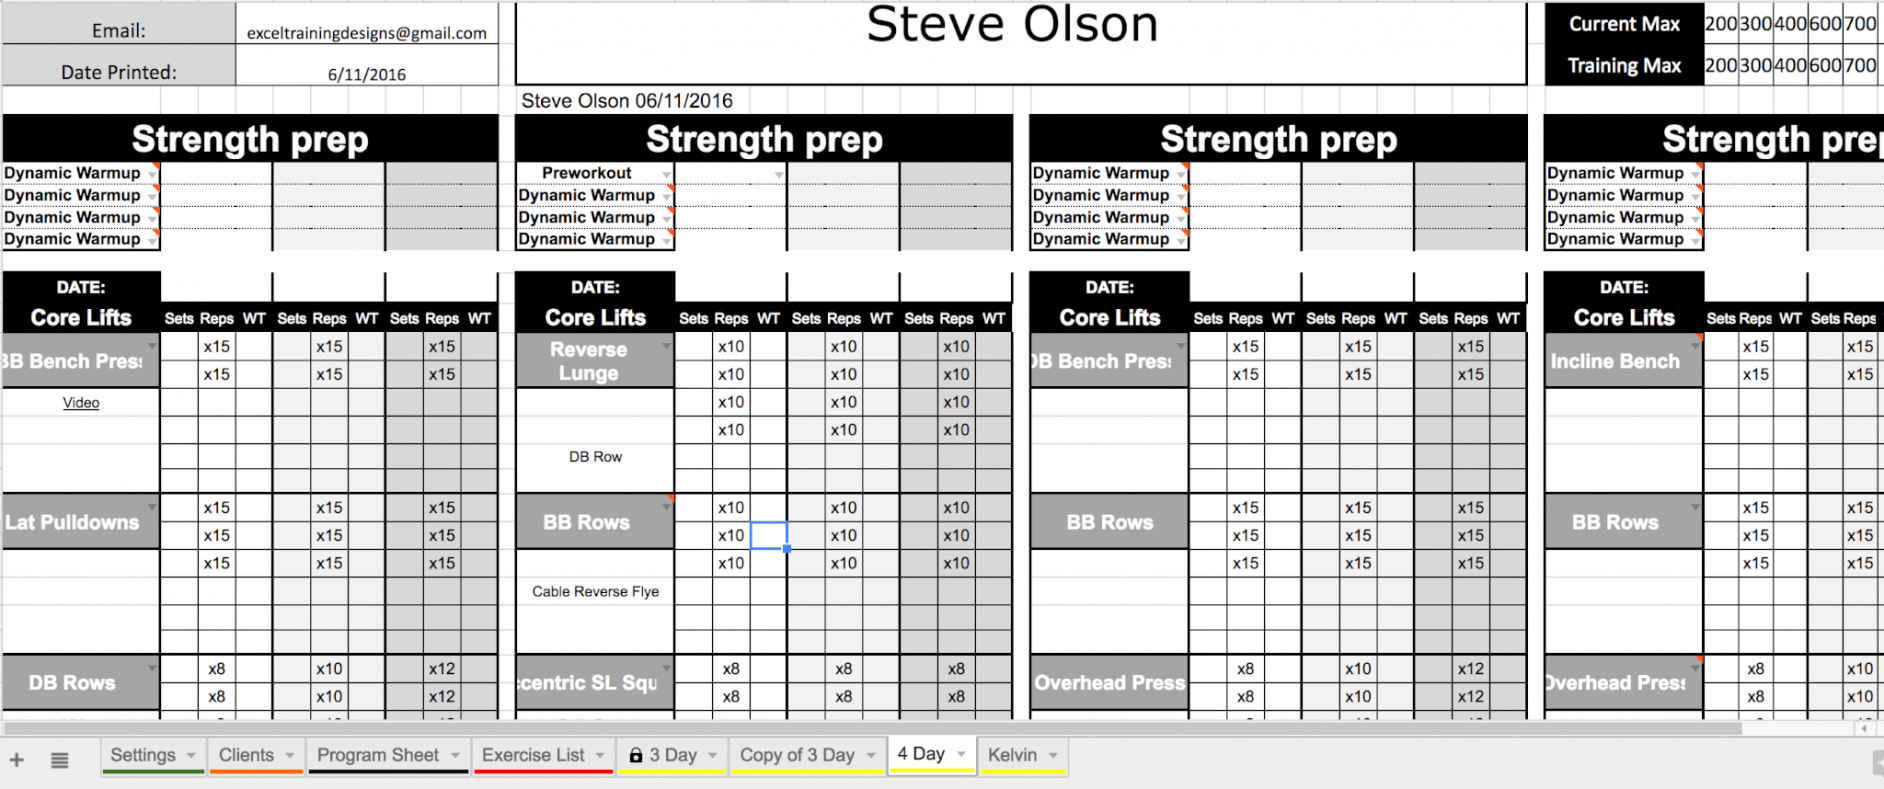 free excel personal training templates  excel training designs personal training schedule template example